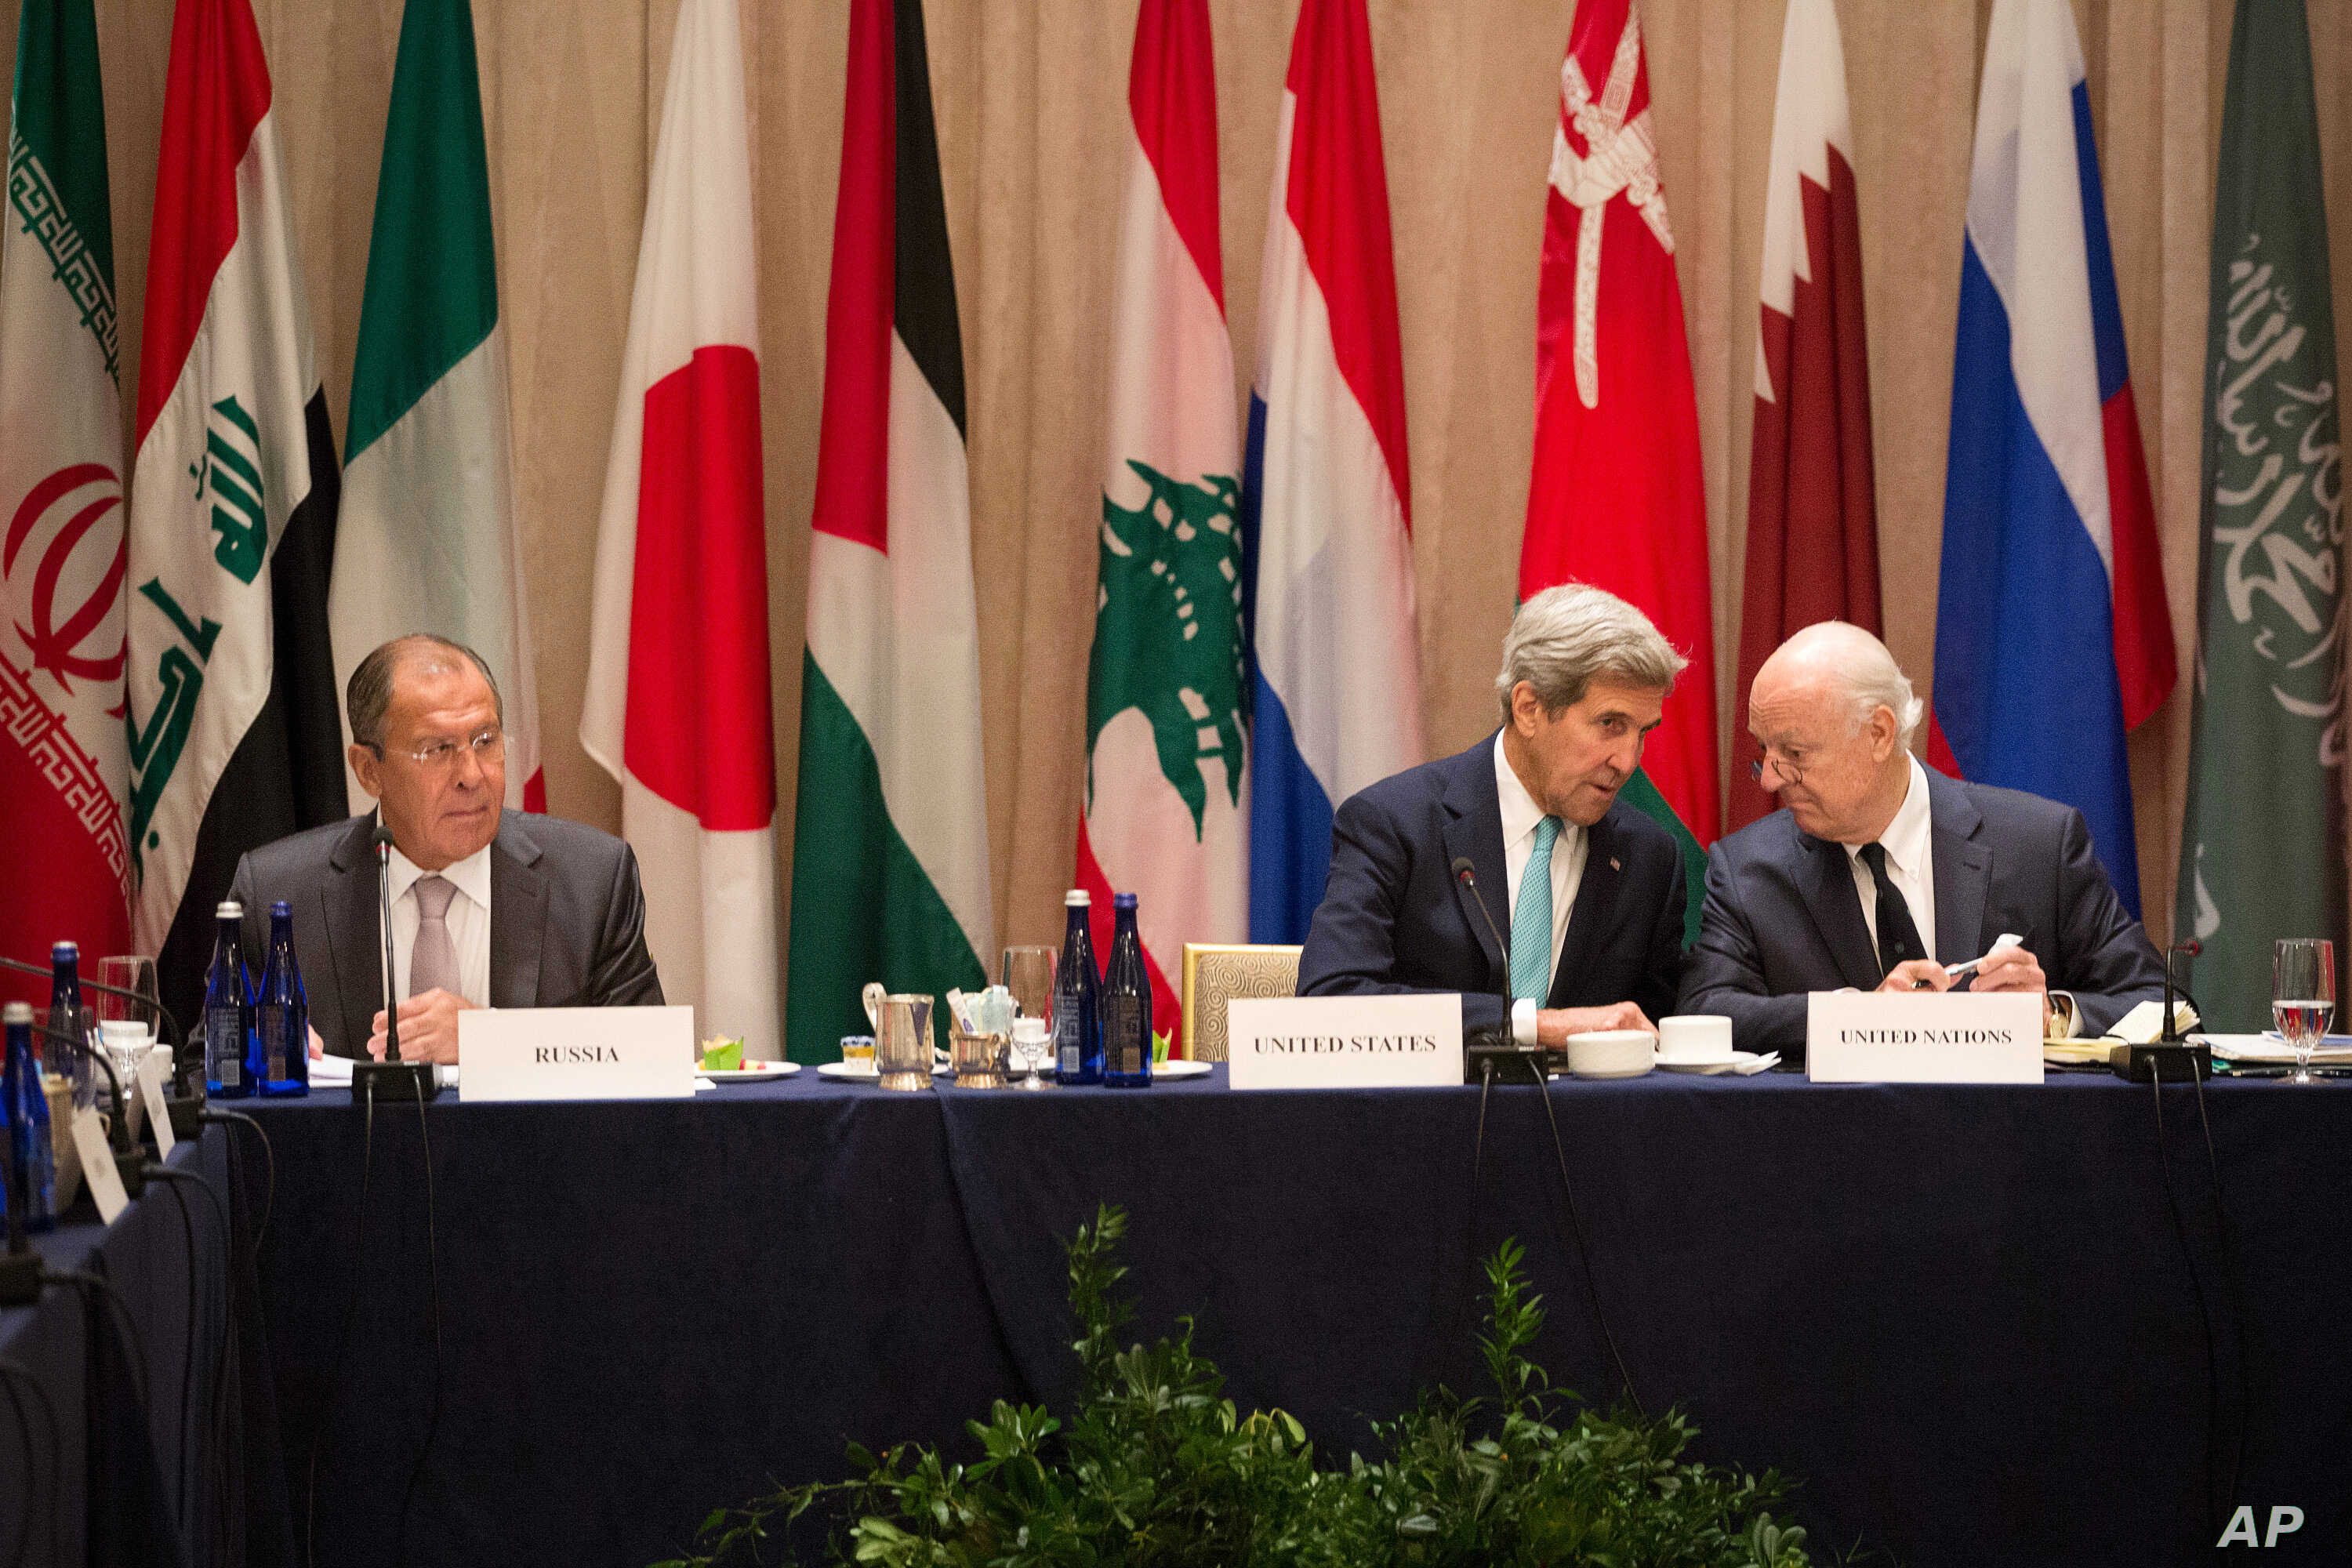 U.S. Secretary of State John Kerry (C) sits with United Nations special envoy to Syria, Staffan de Mistura (R) and Russian Foreign Minister Sergei Lavrov during a meeting of the International Syria Support Group, Sept. 20, 2016, in New York.